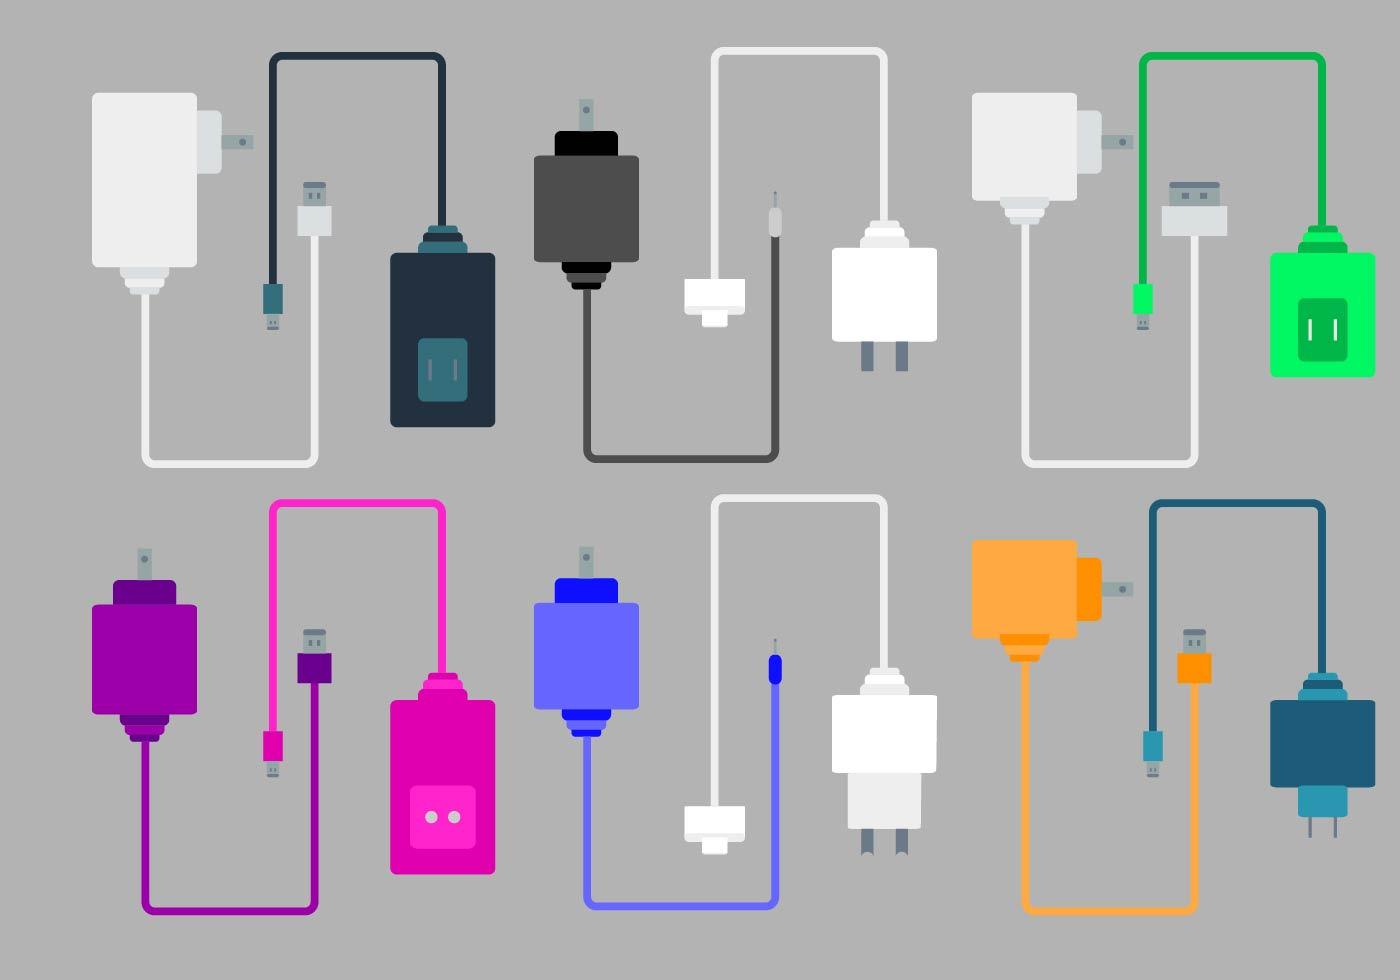 Cords Free Vector Art - (5434 Free Downloads)